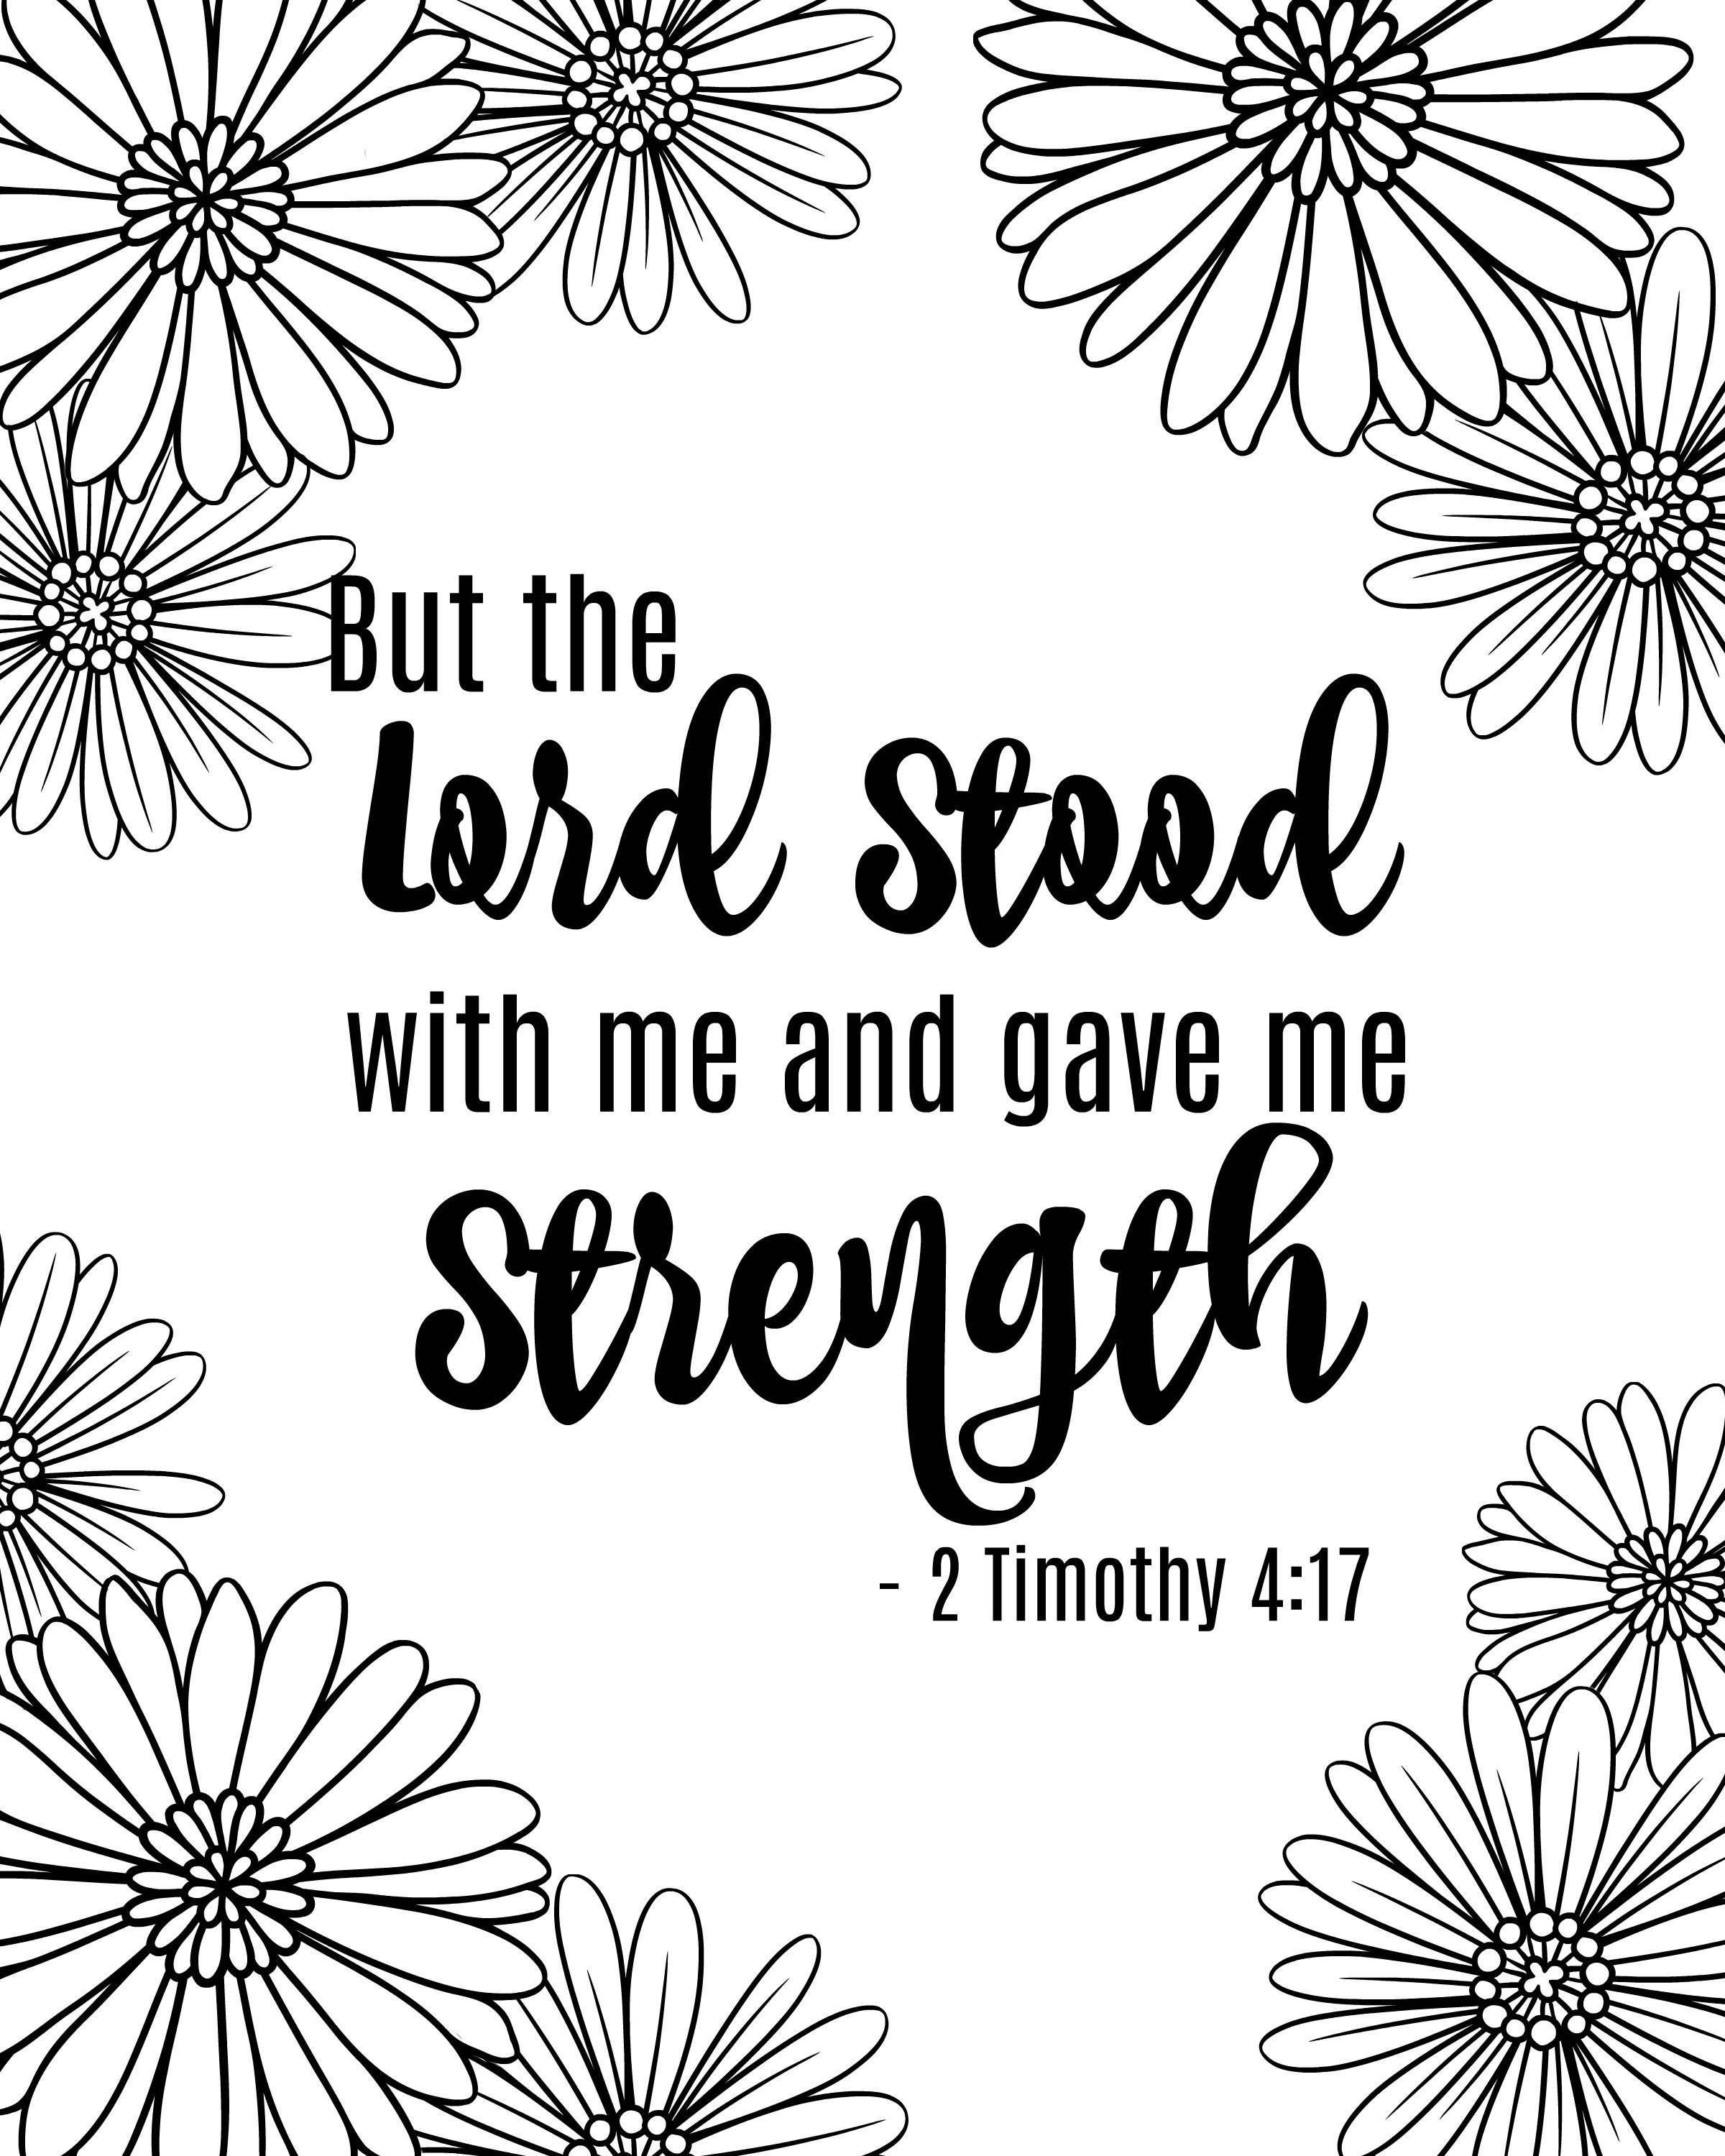 MUST HAVE FREE BIBLE VERSE PRINTABLE